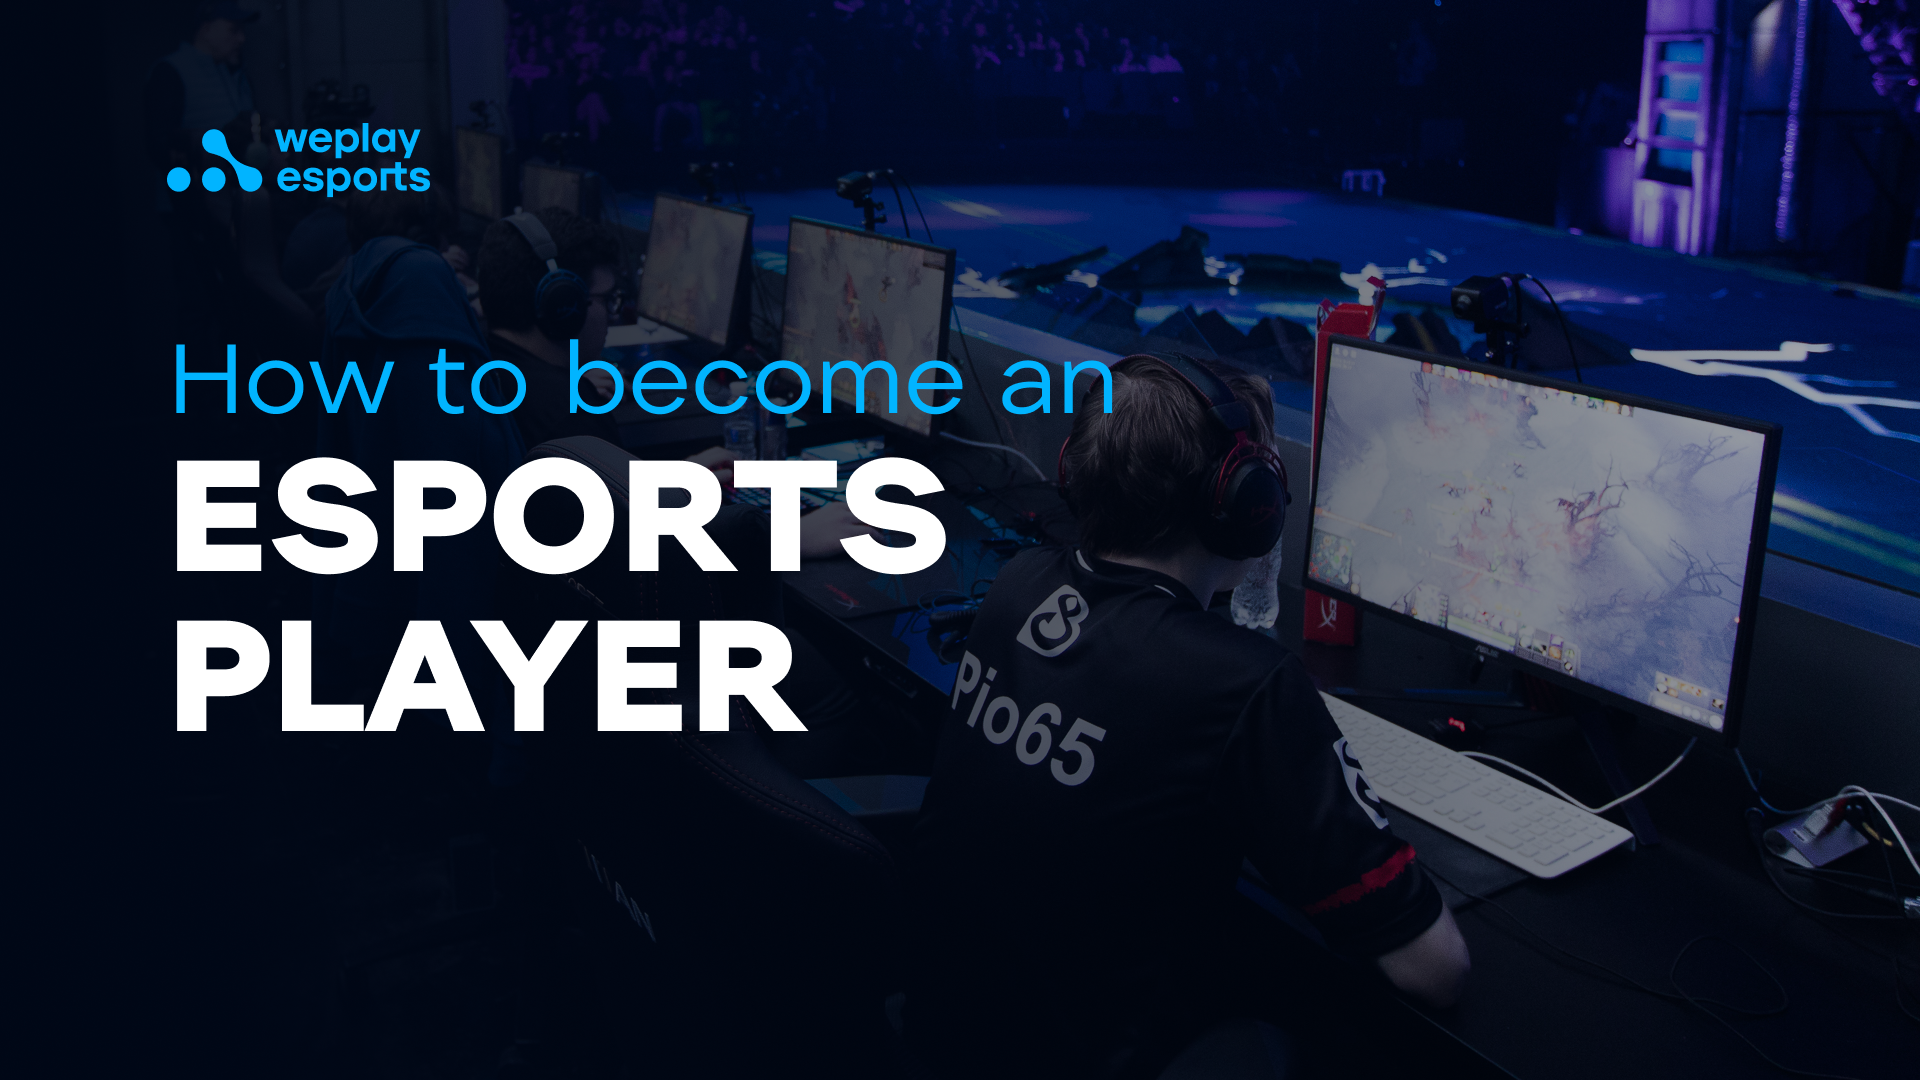 How to become an esports player